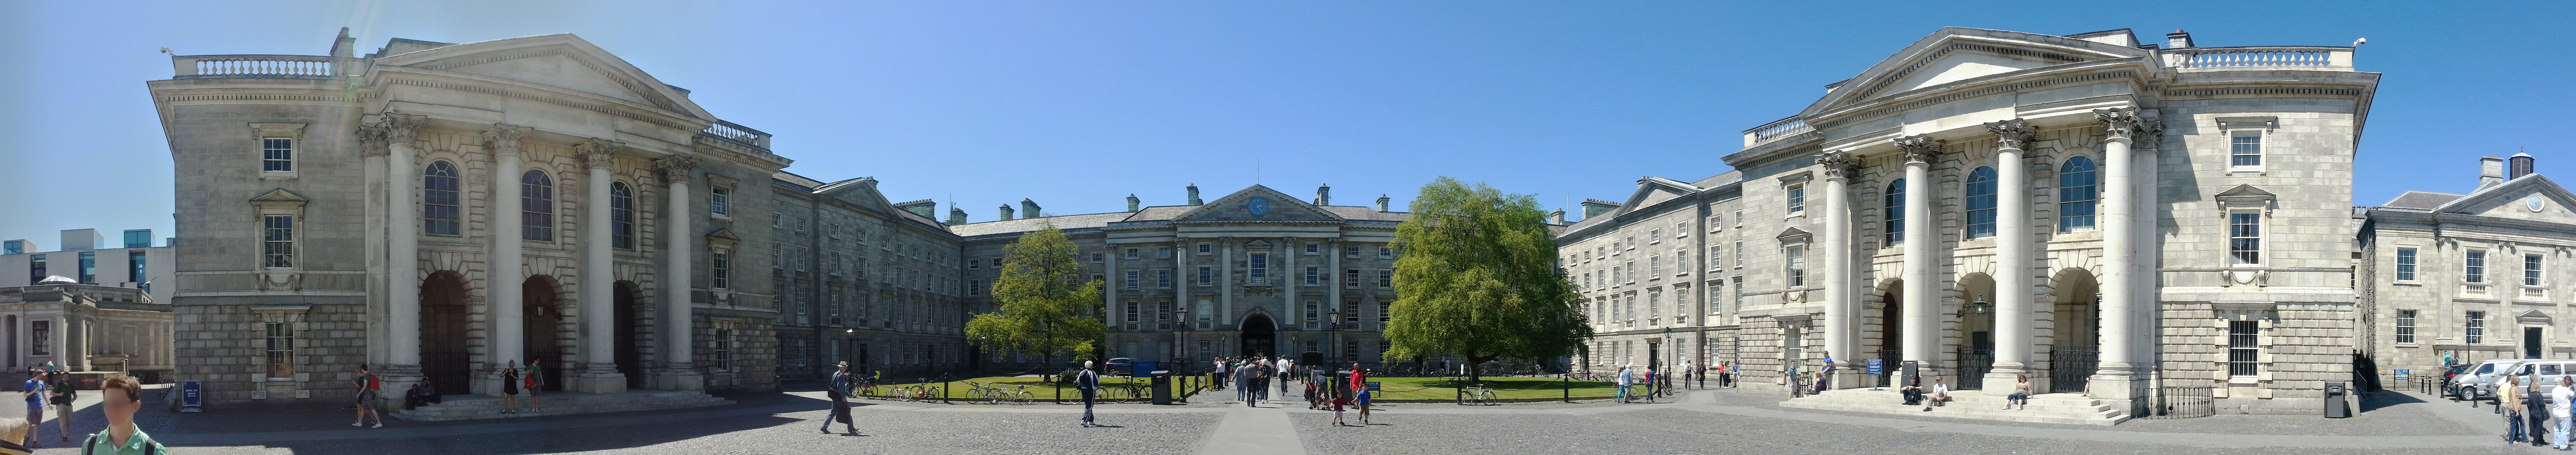 trinity college dublin creative writing The author steve gronert ellerhoff holds a phd in english from trinity college dublin (2014) and is a graduate of the creative writing ma at lancaster university in england (2003).